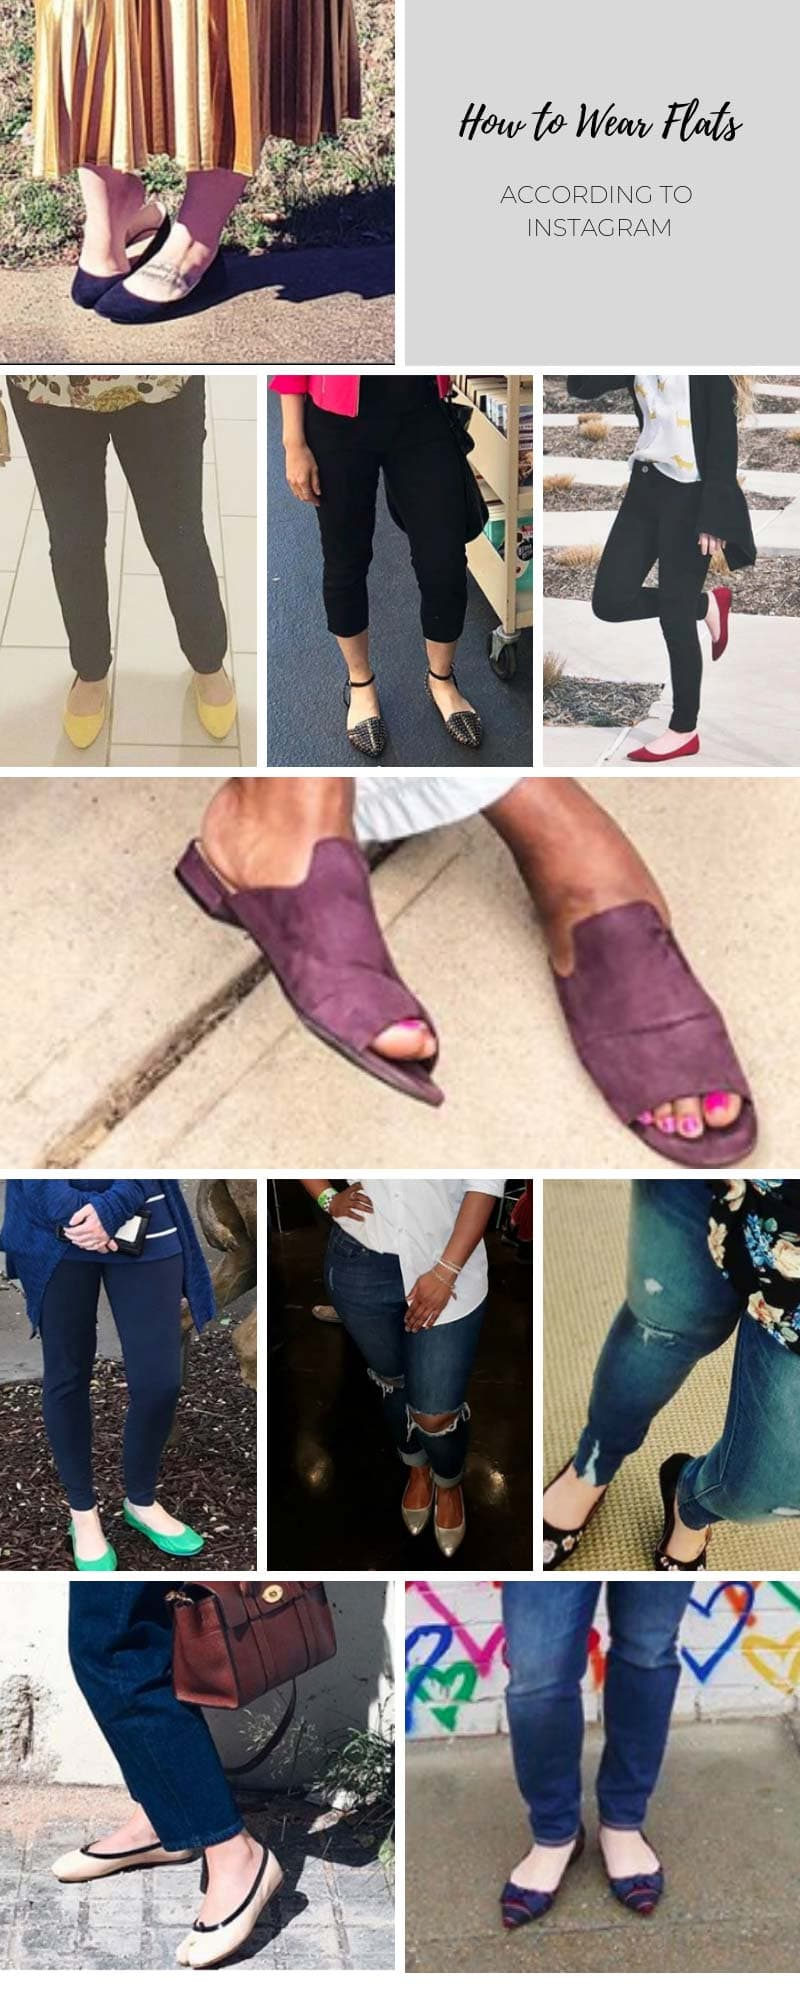 Infographic showing 10 ways to wear flats